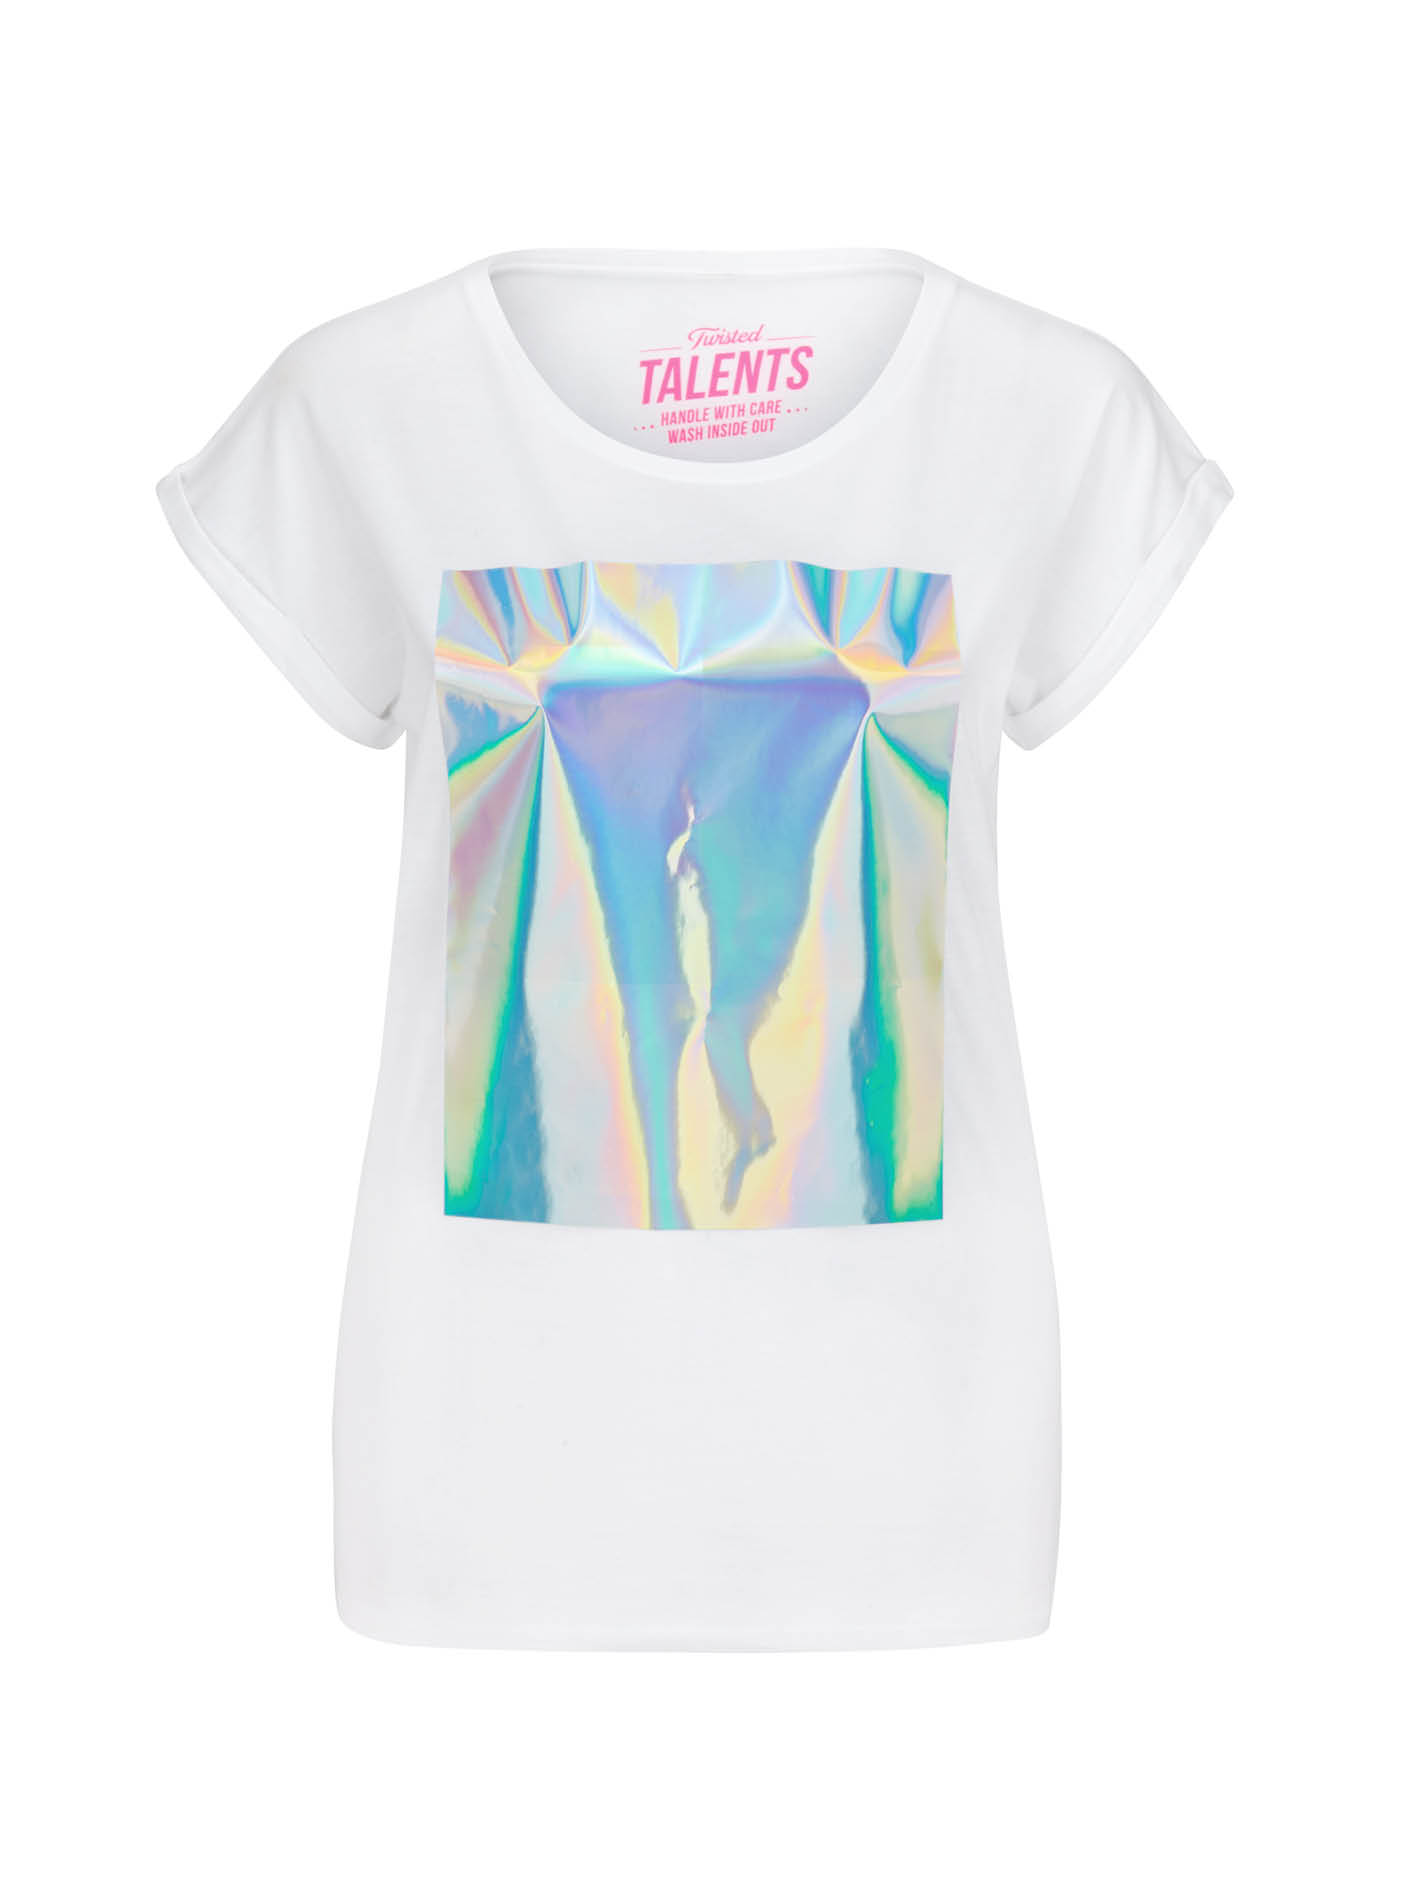 TWISTED TALENTS Graphic Design T-Shirts einfach online kaufen. Mirror